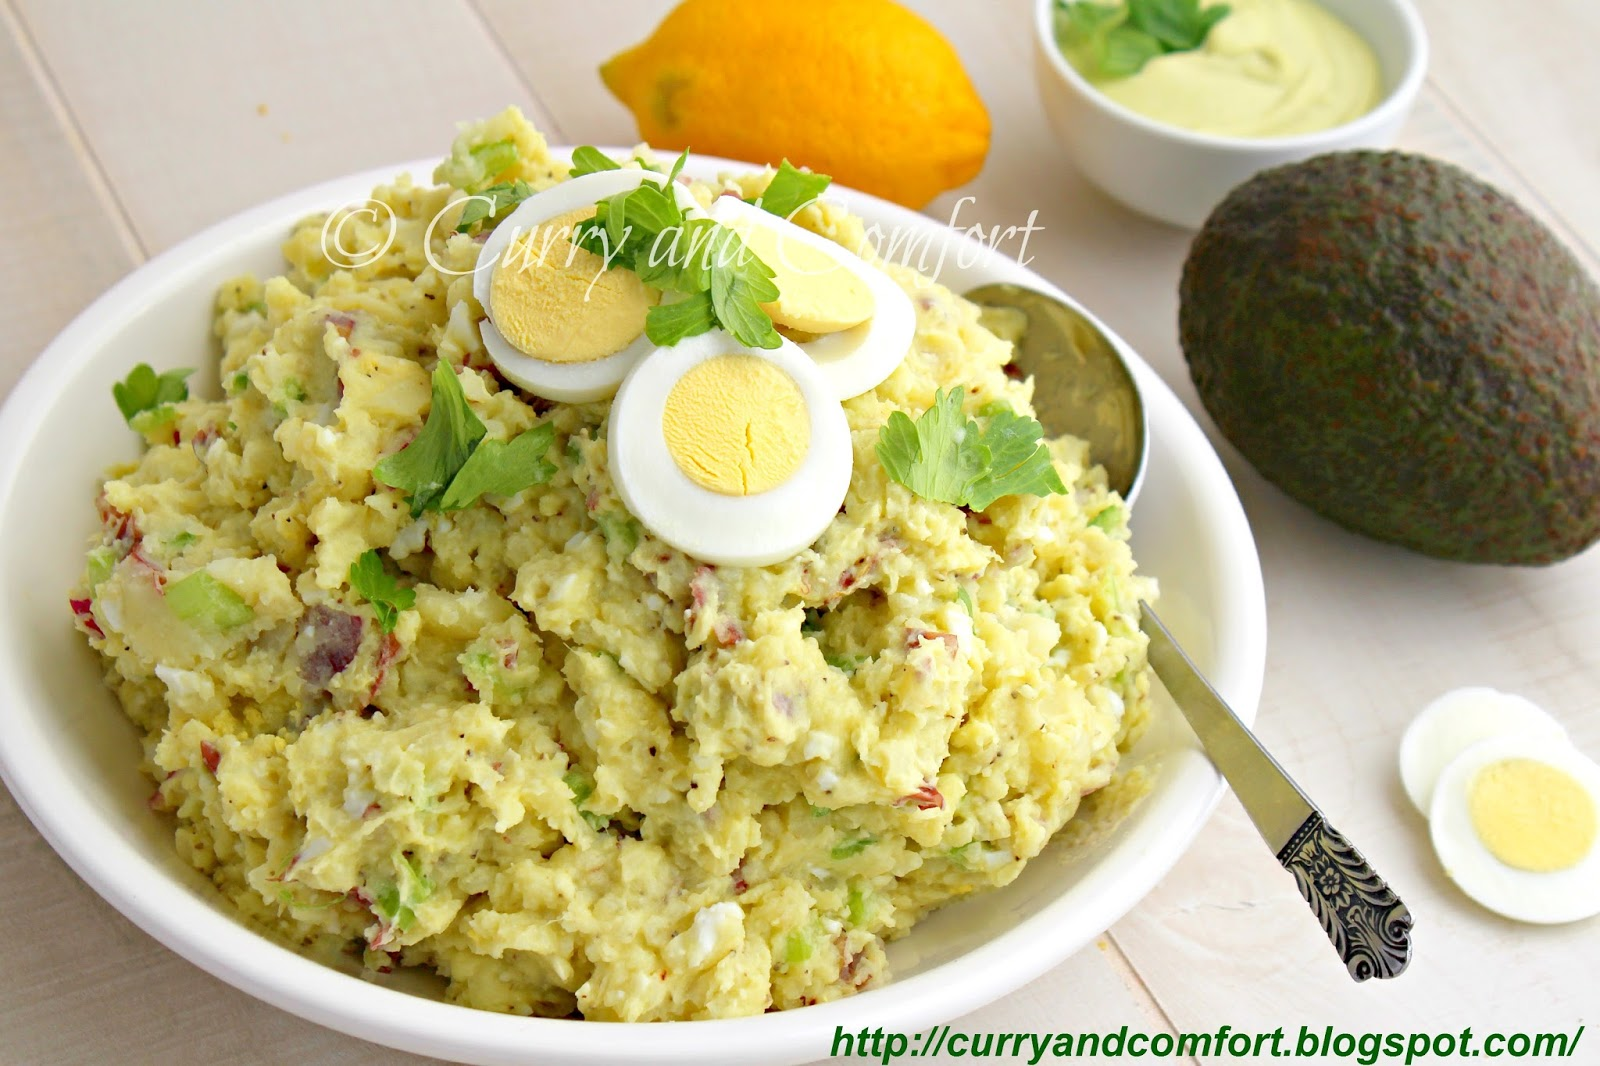 Kitchen Simmer: Smashed Potato Salad with Avocado Dressing